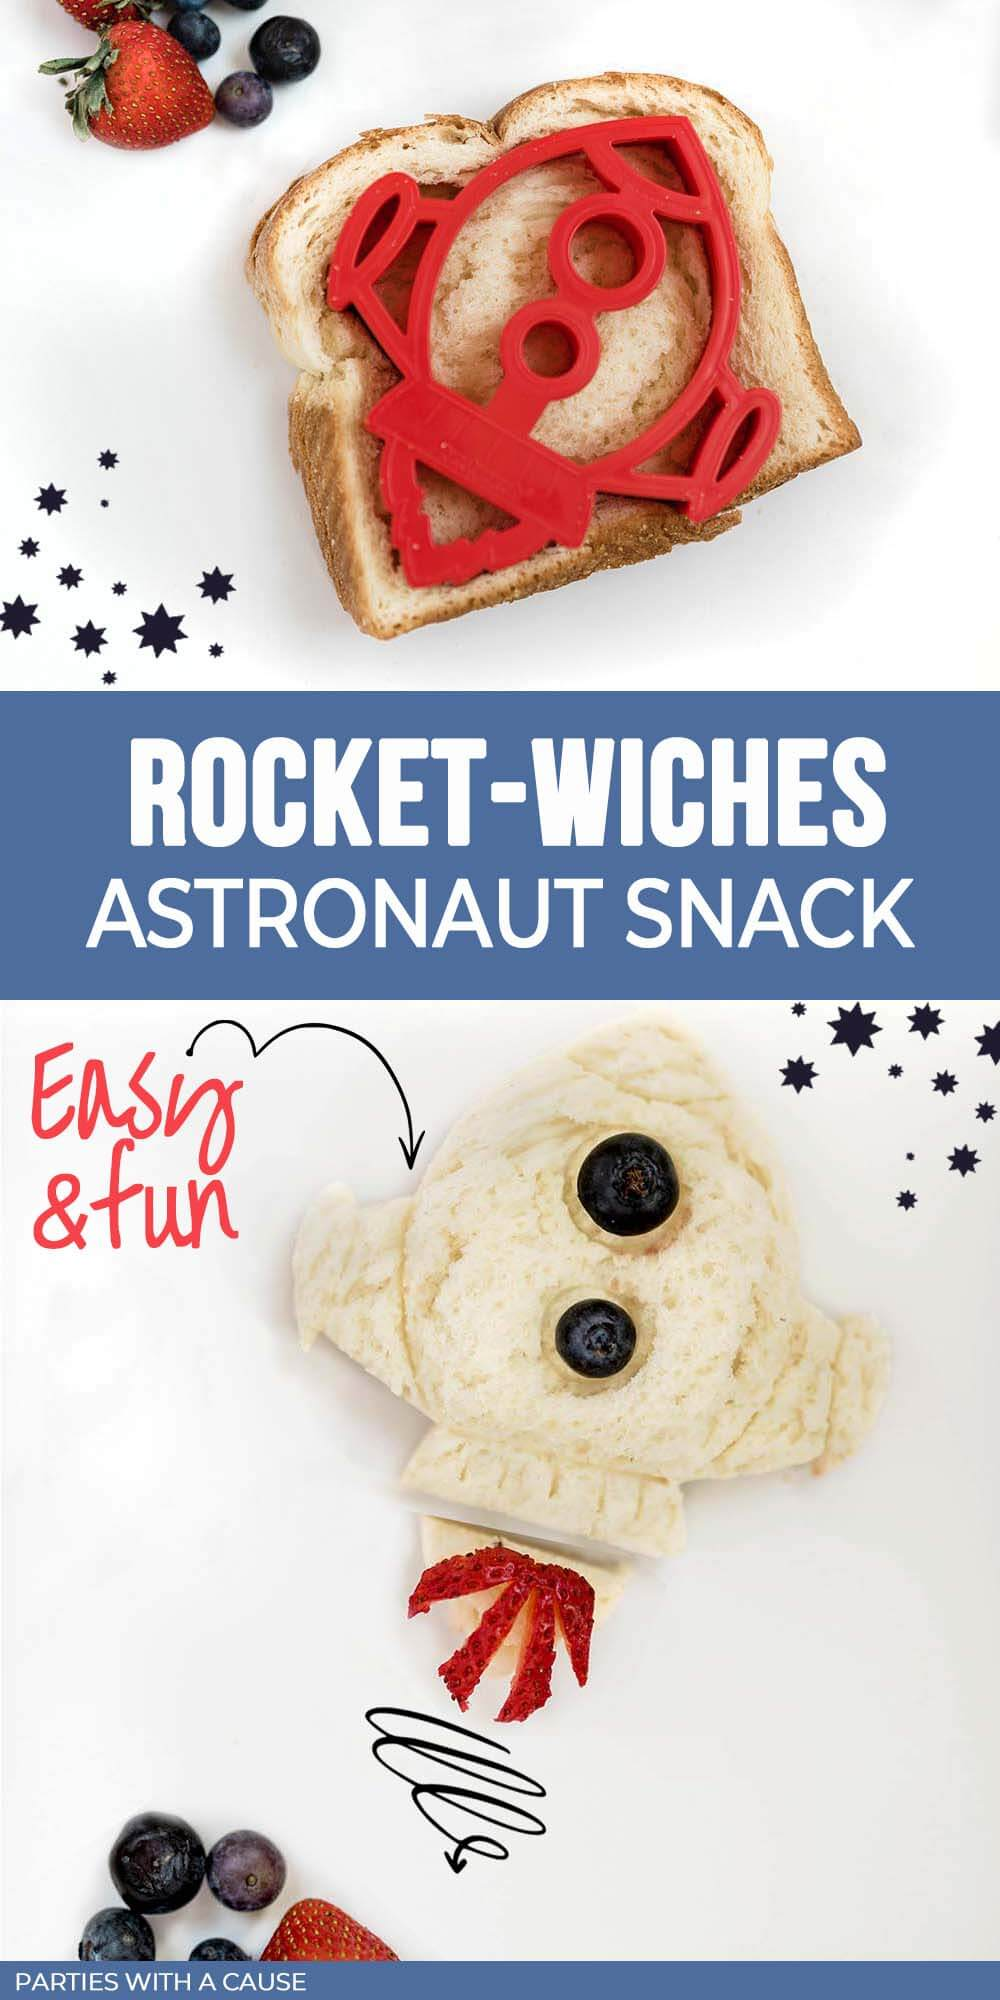 Rocket-wiches astronaut party snack by Salt Lake party stylist